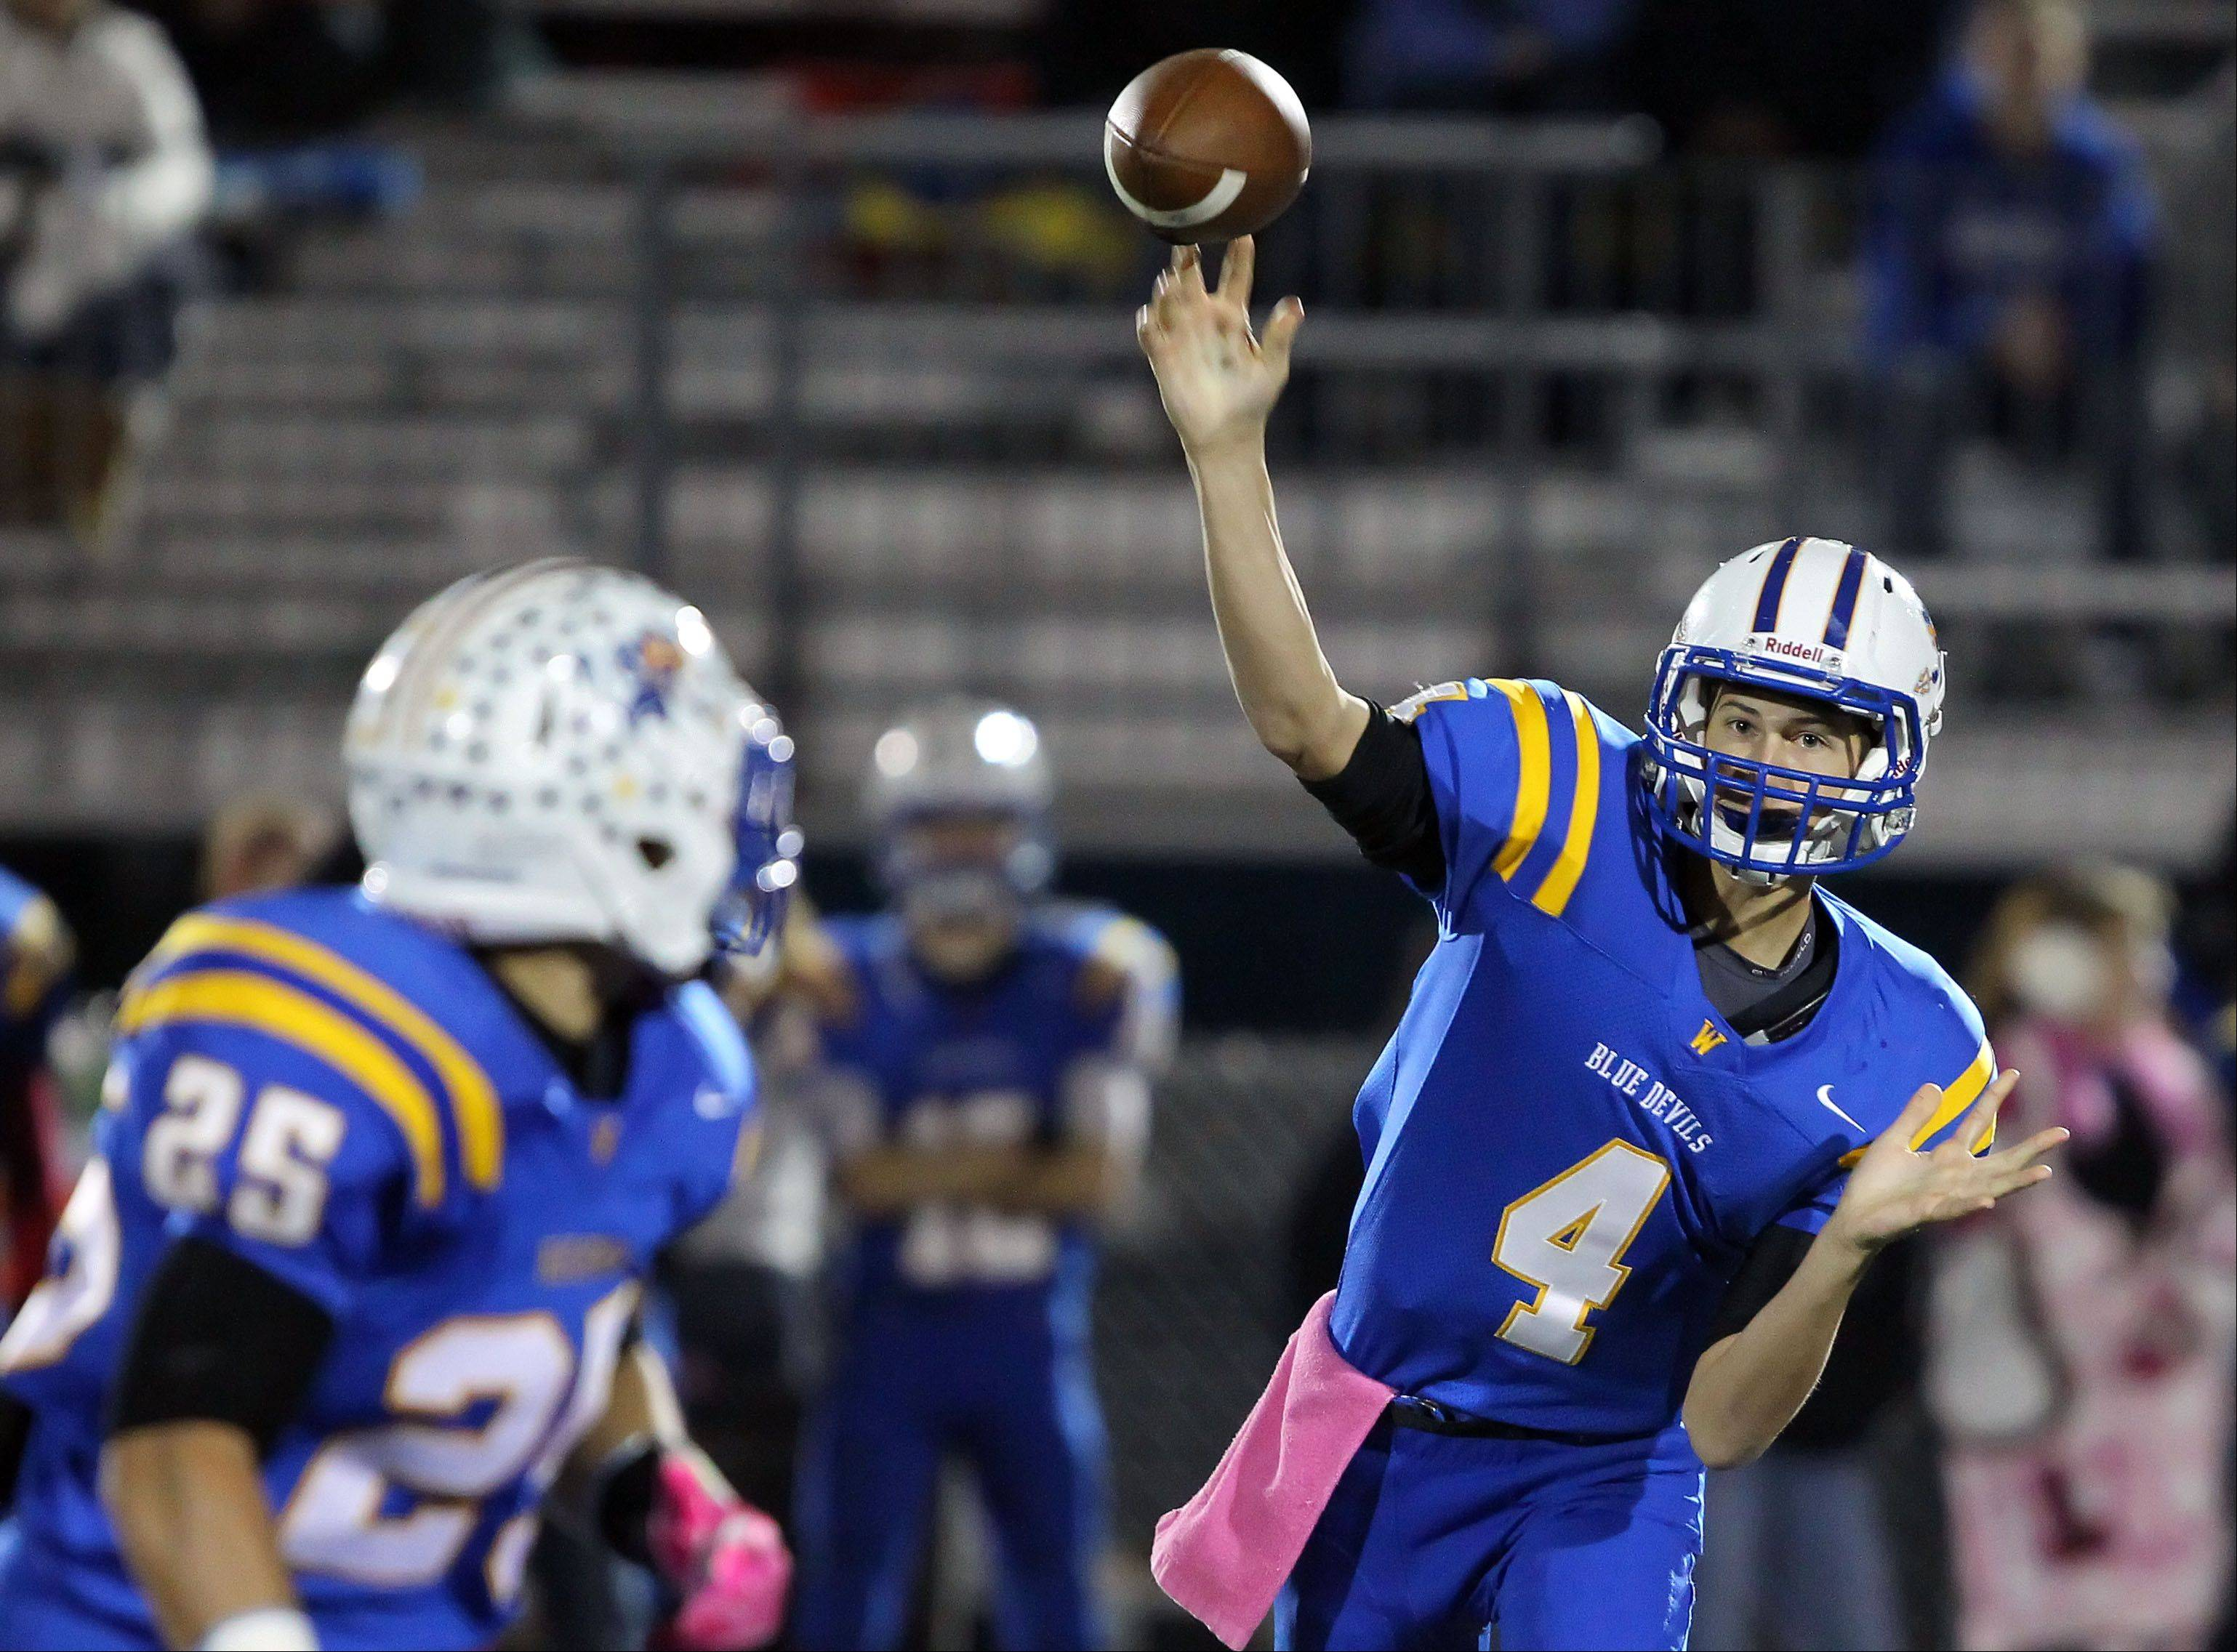 Warren quarterback Adam Reuss throws to Davonte Wilcox during the Blue Devils' loss to Lake Zurich on Friday. In Week 1 of the postseason, Warren will meet up with another familiar foe, Stevenson.